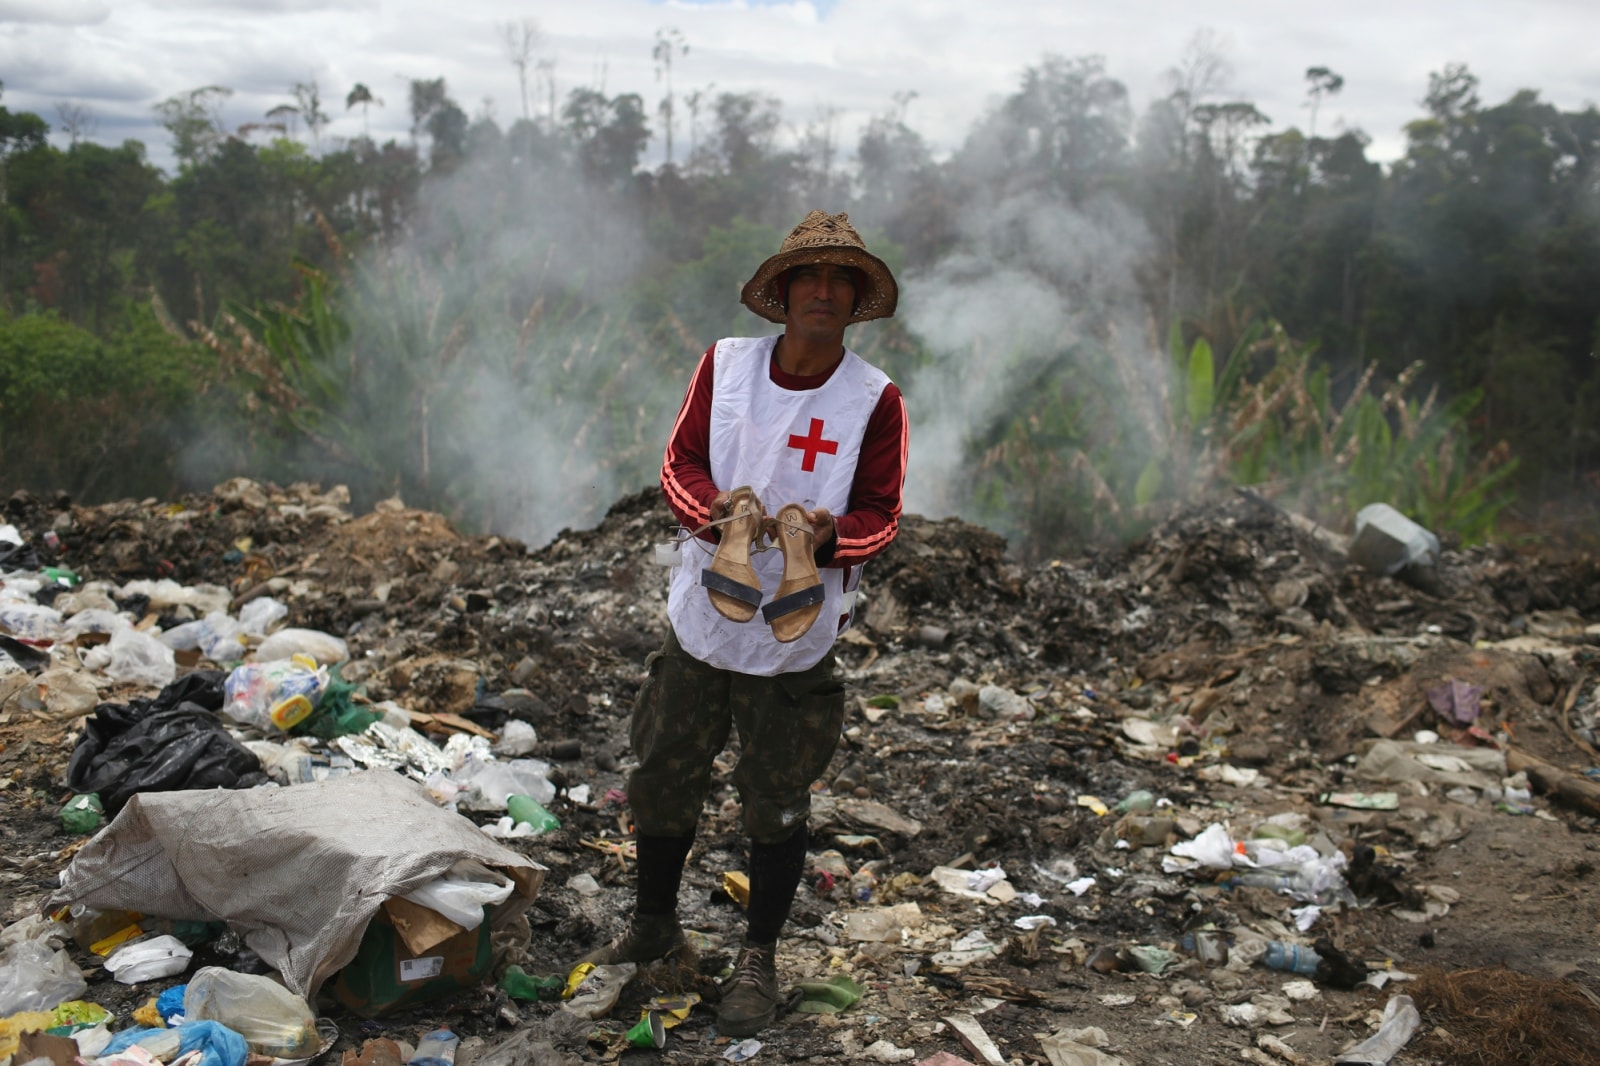 Venezuelan Charles Sanchez holds a pair of shoes after scraping on a garbage dump in the border city of Pacaraima, Brazil April 15, 2019. REUTERS/Pilar Olivares